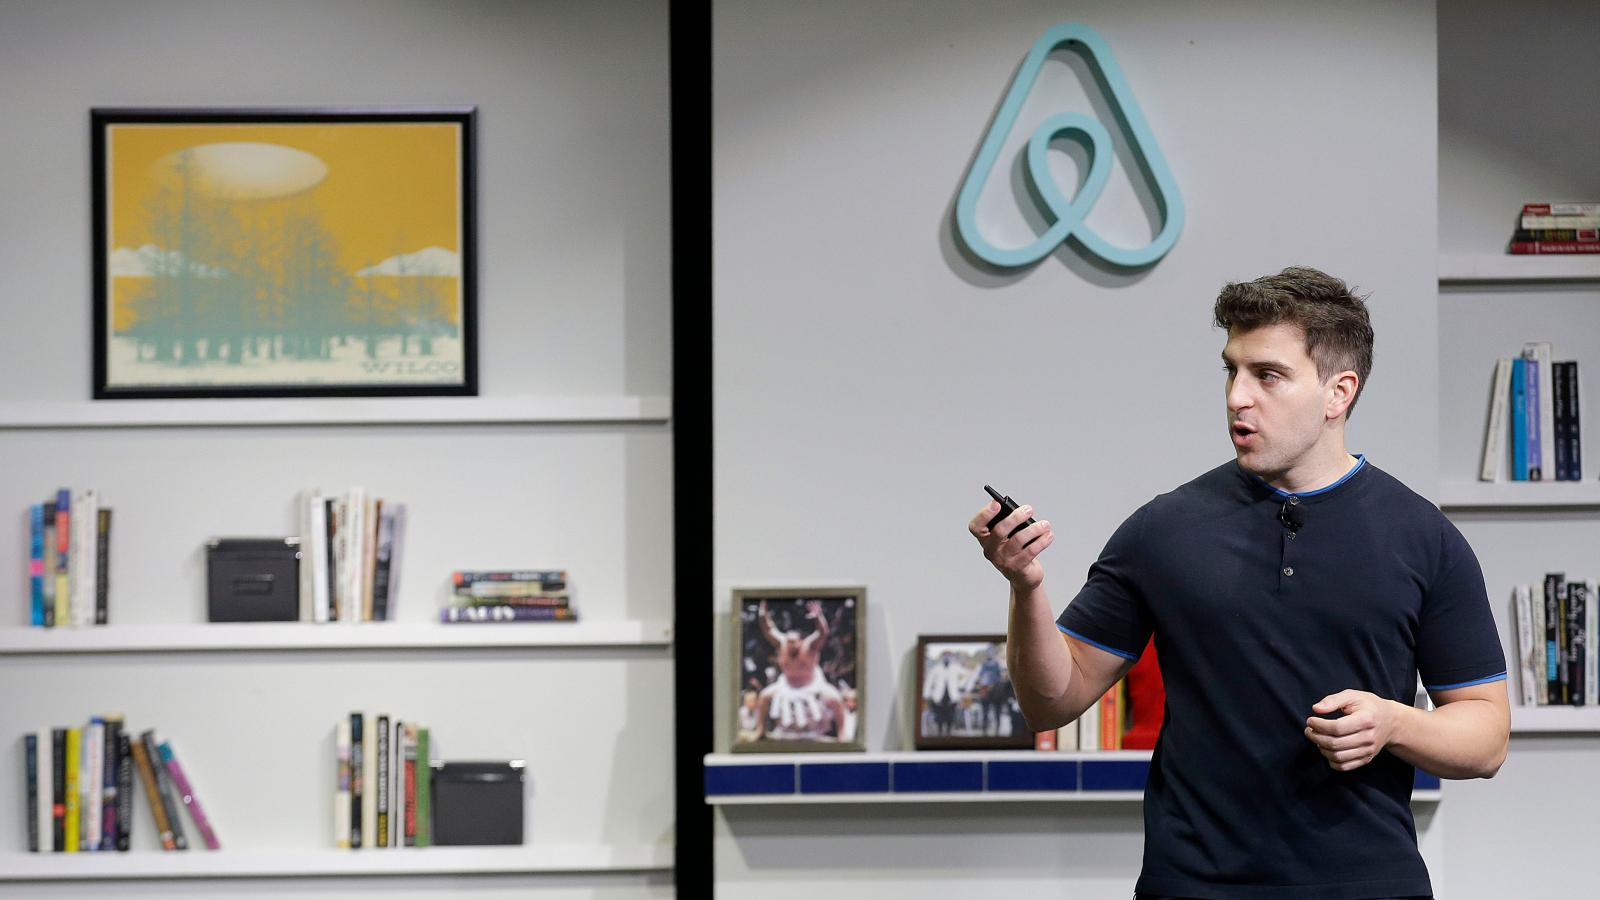 Airbnb is defined by its CEO Brian Chesky's obsessive perfection — Quartz  at Work